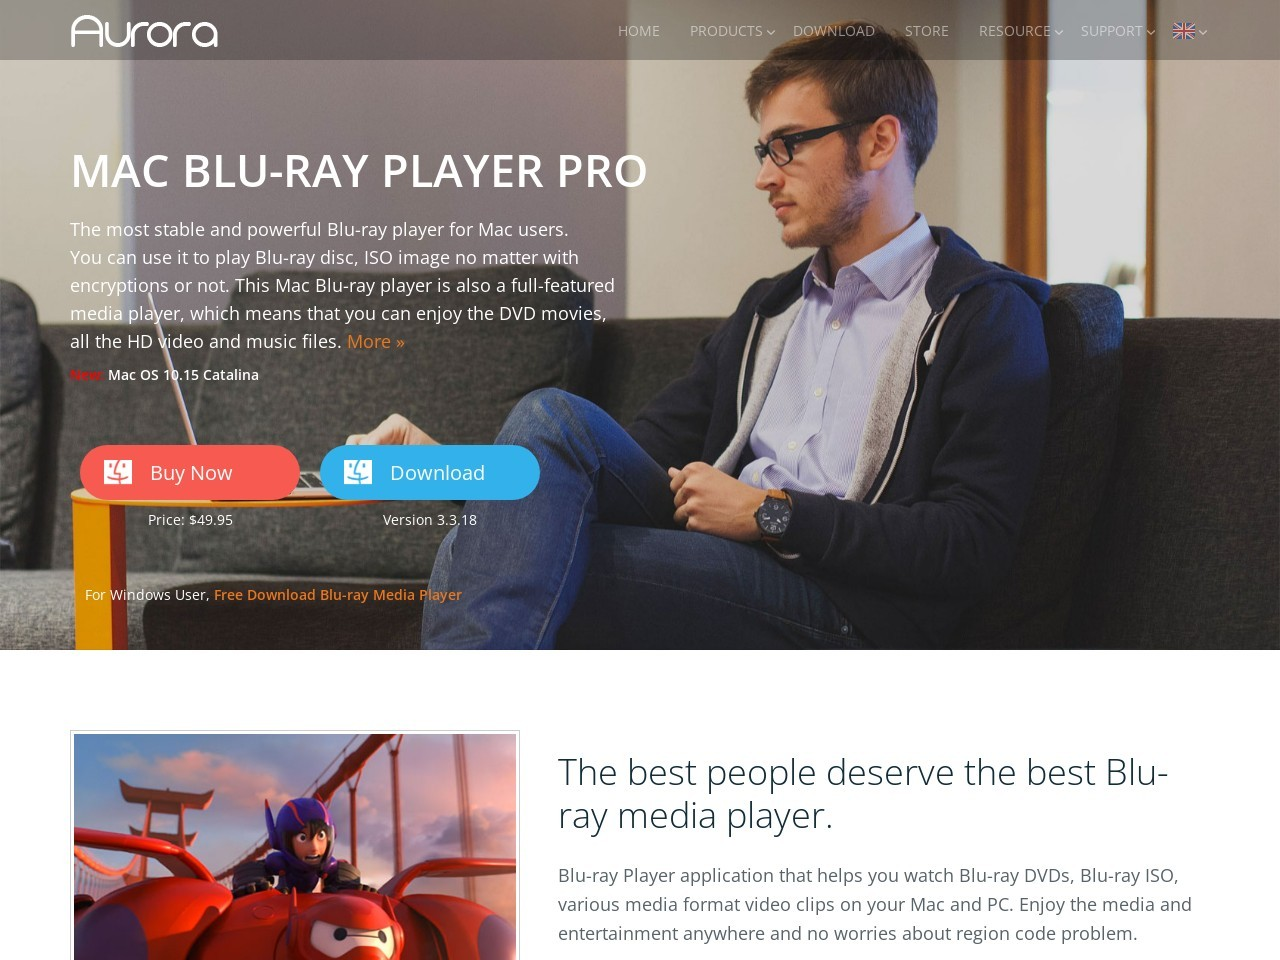 Aurora Blu-Ray Player